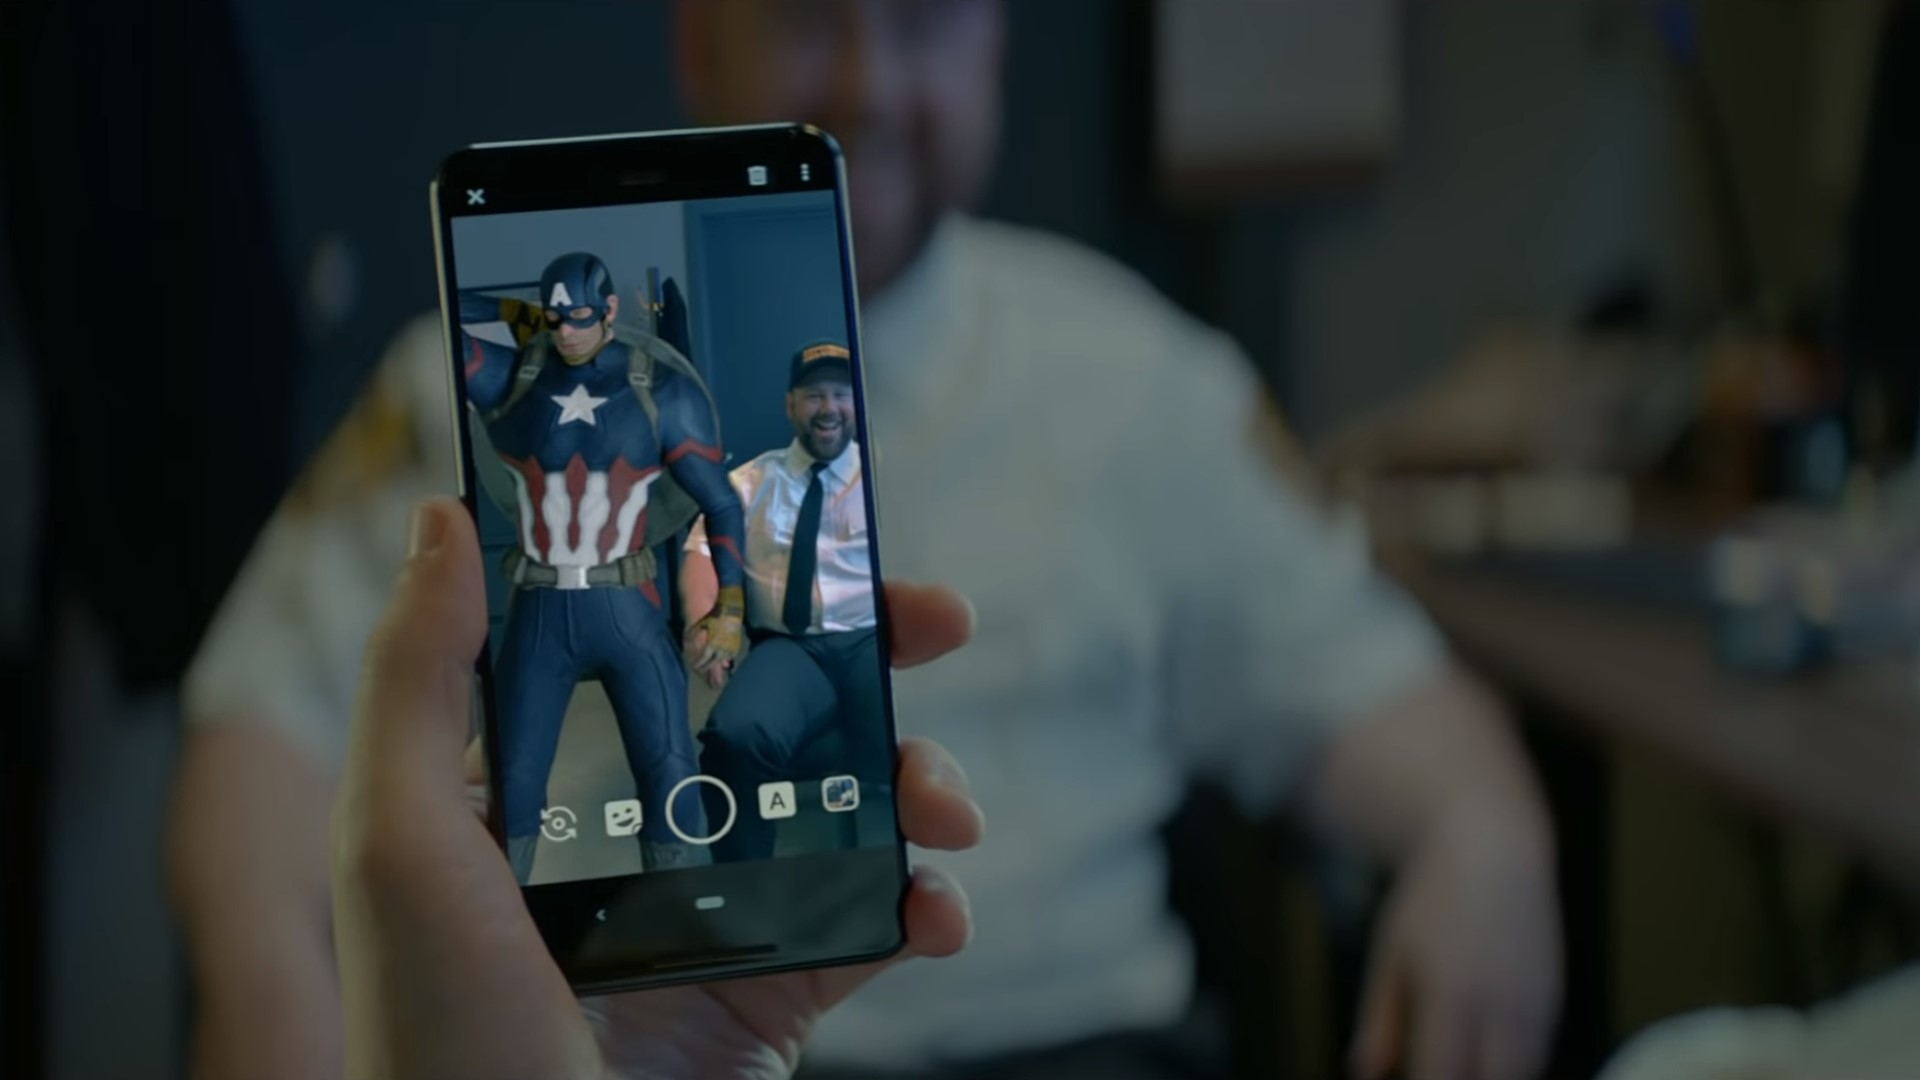 Google partners with Marvel Studios for exclusive Avengers Endgame Playmoji on Pixel 3